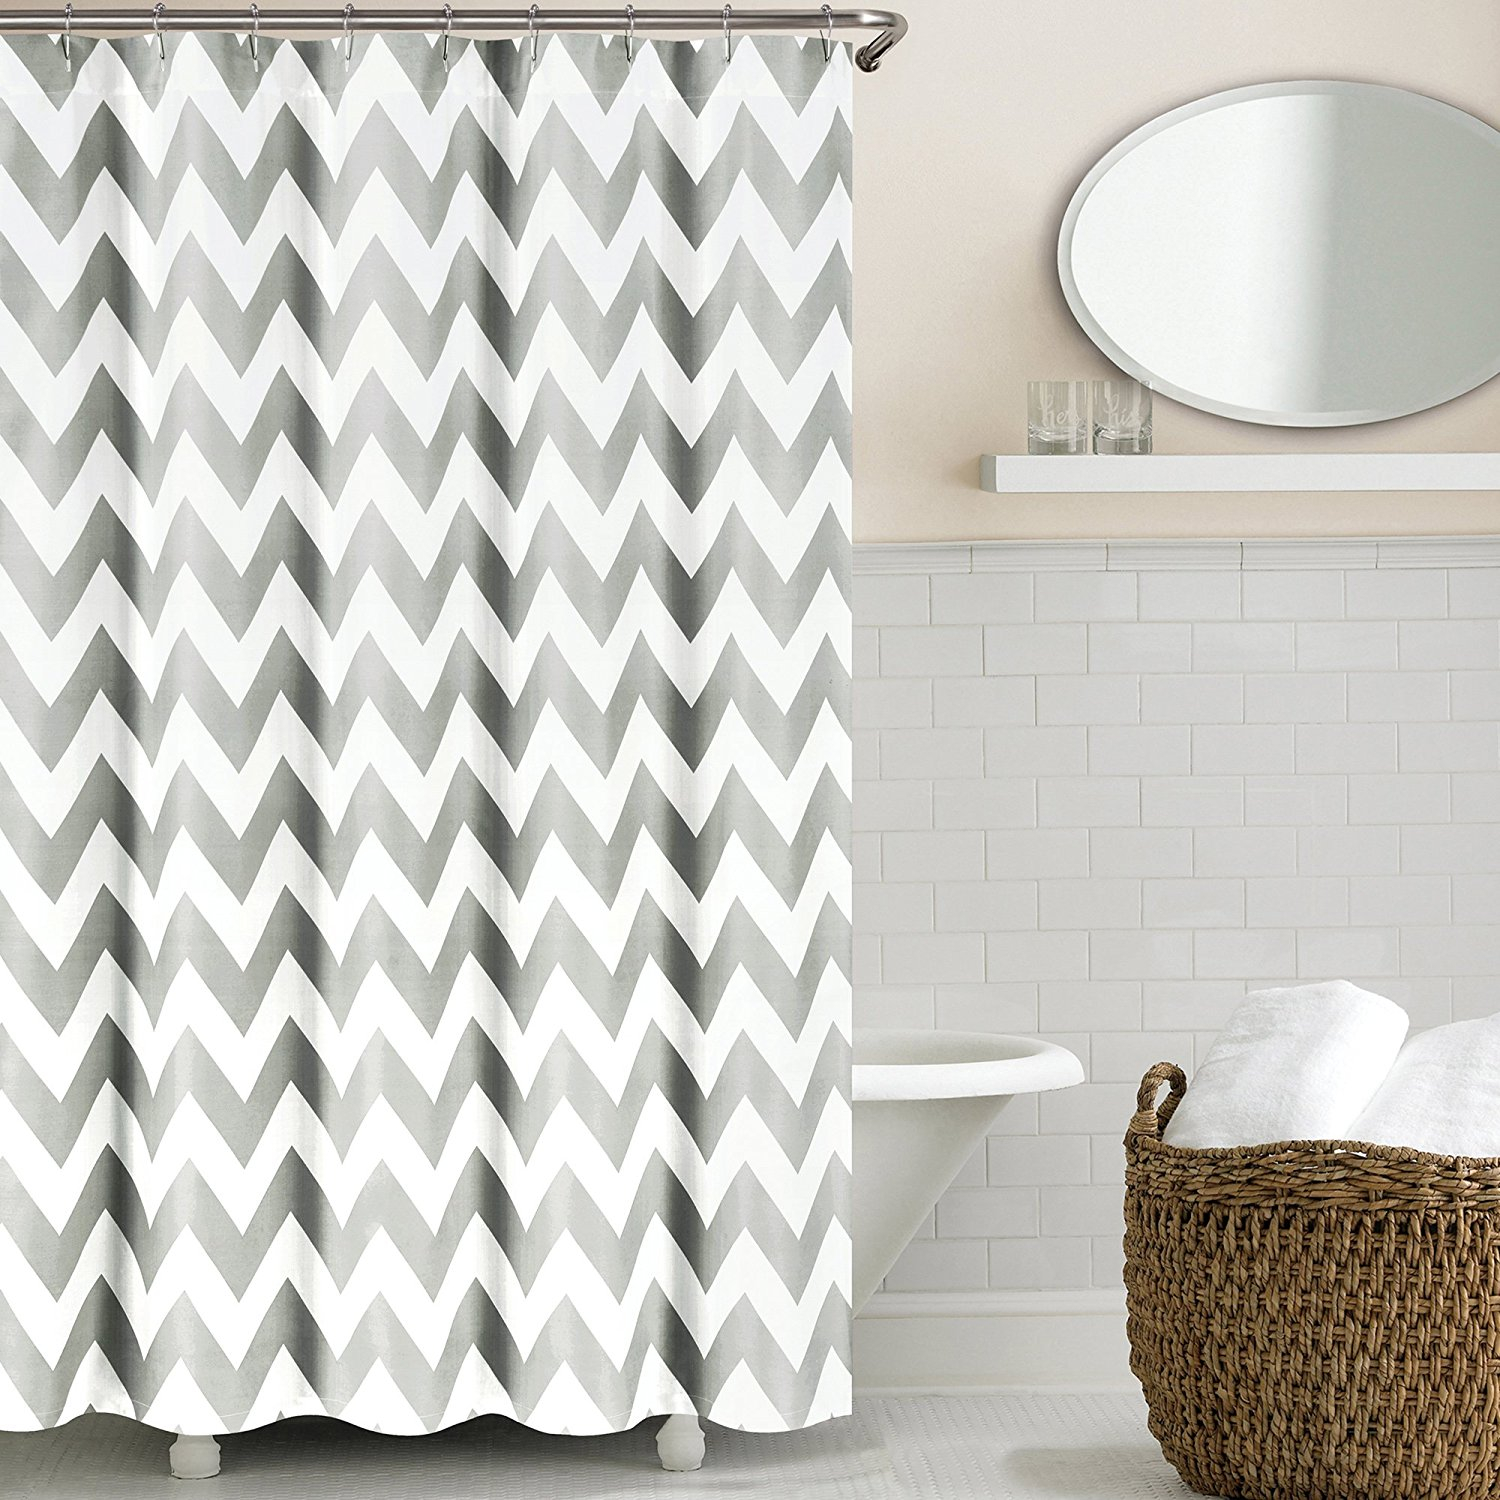 Teal And White Chevron Shower Curtain Shower Curtains Ideas